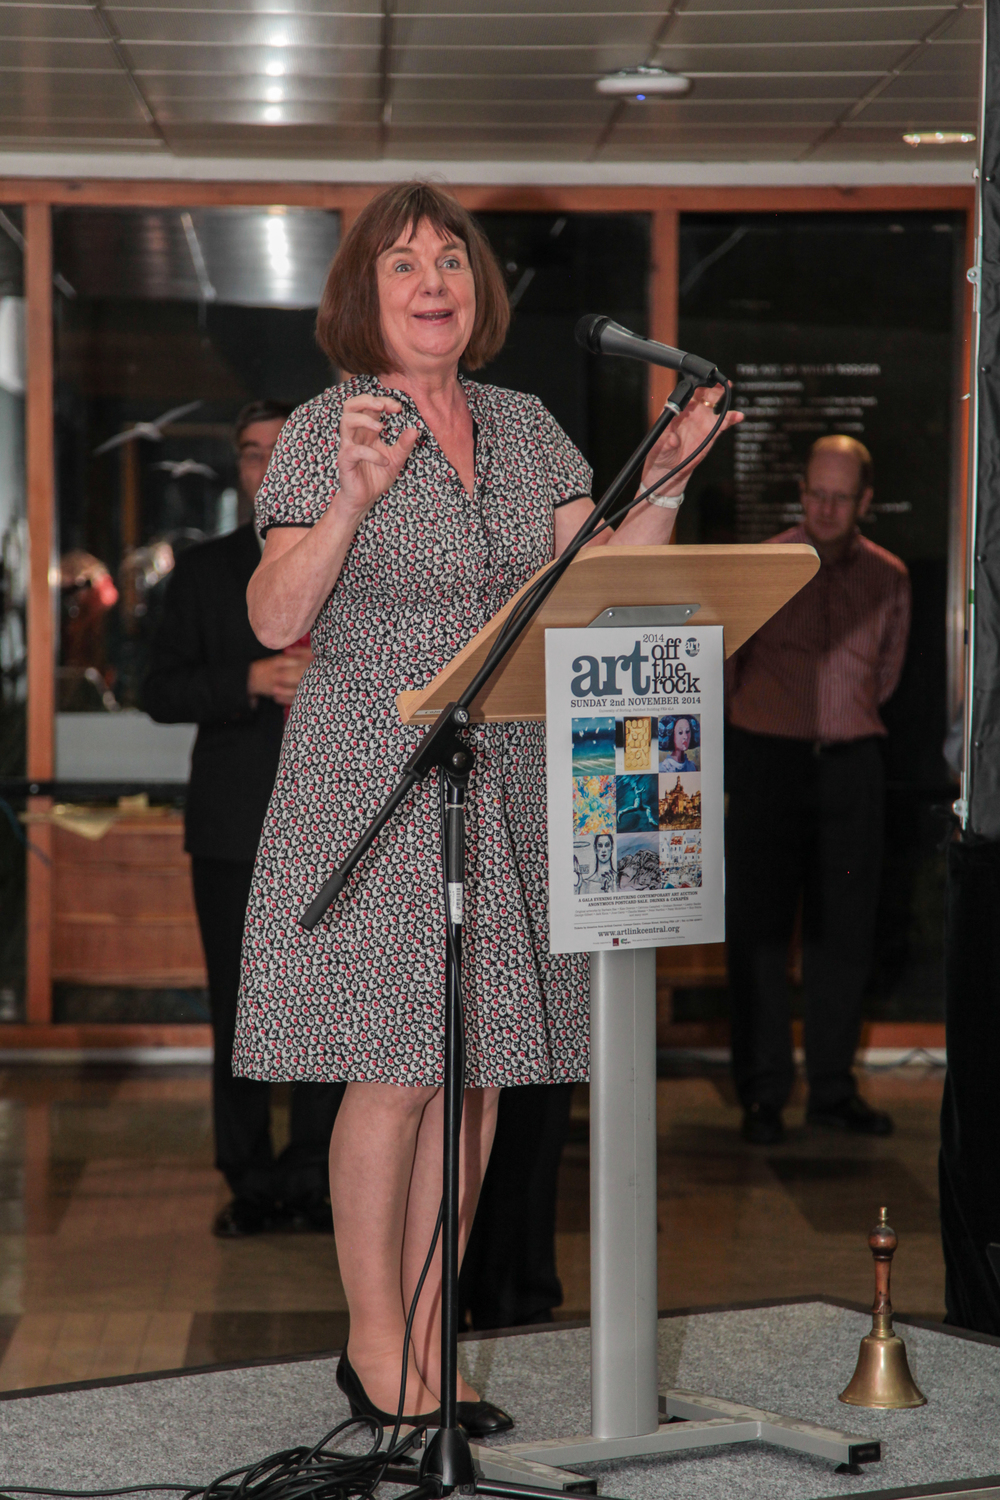 Artlink Central's Patron Julia Donaldson welcomes guests to Art off the Rock